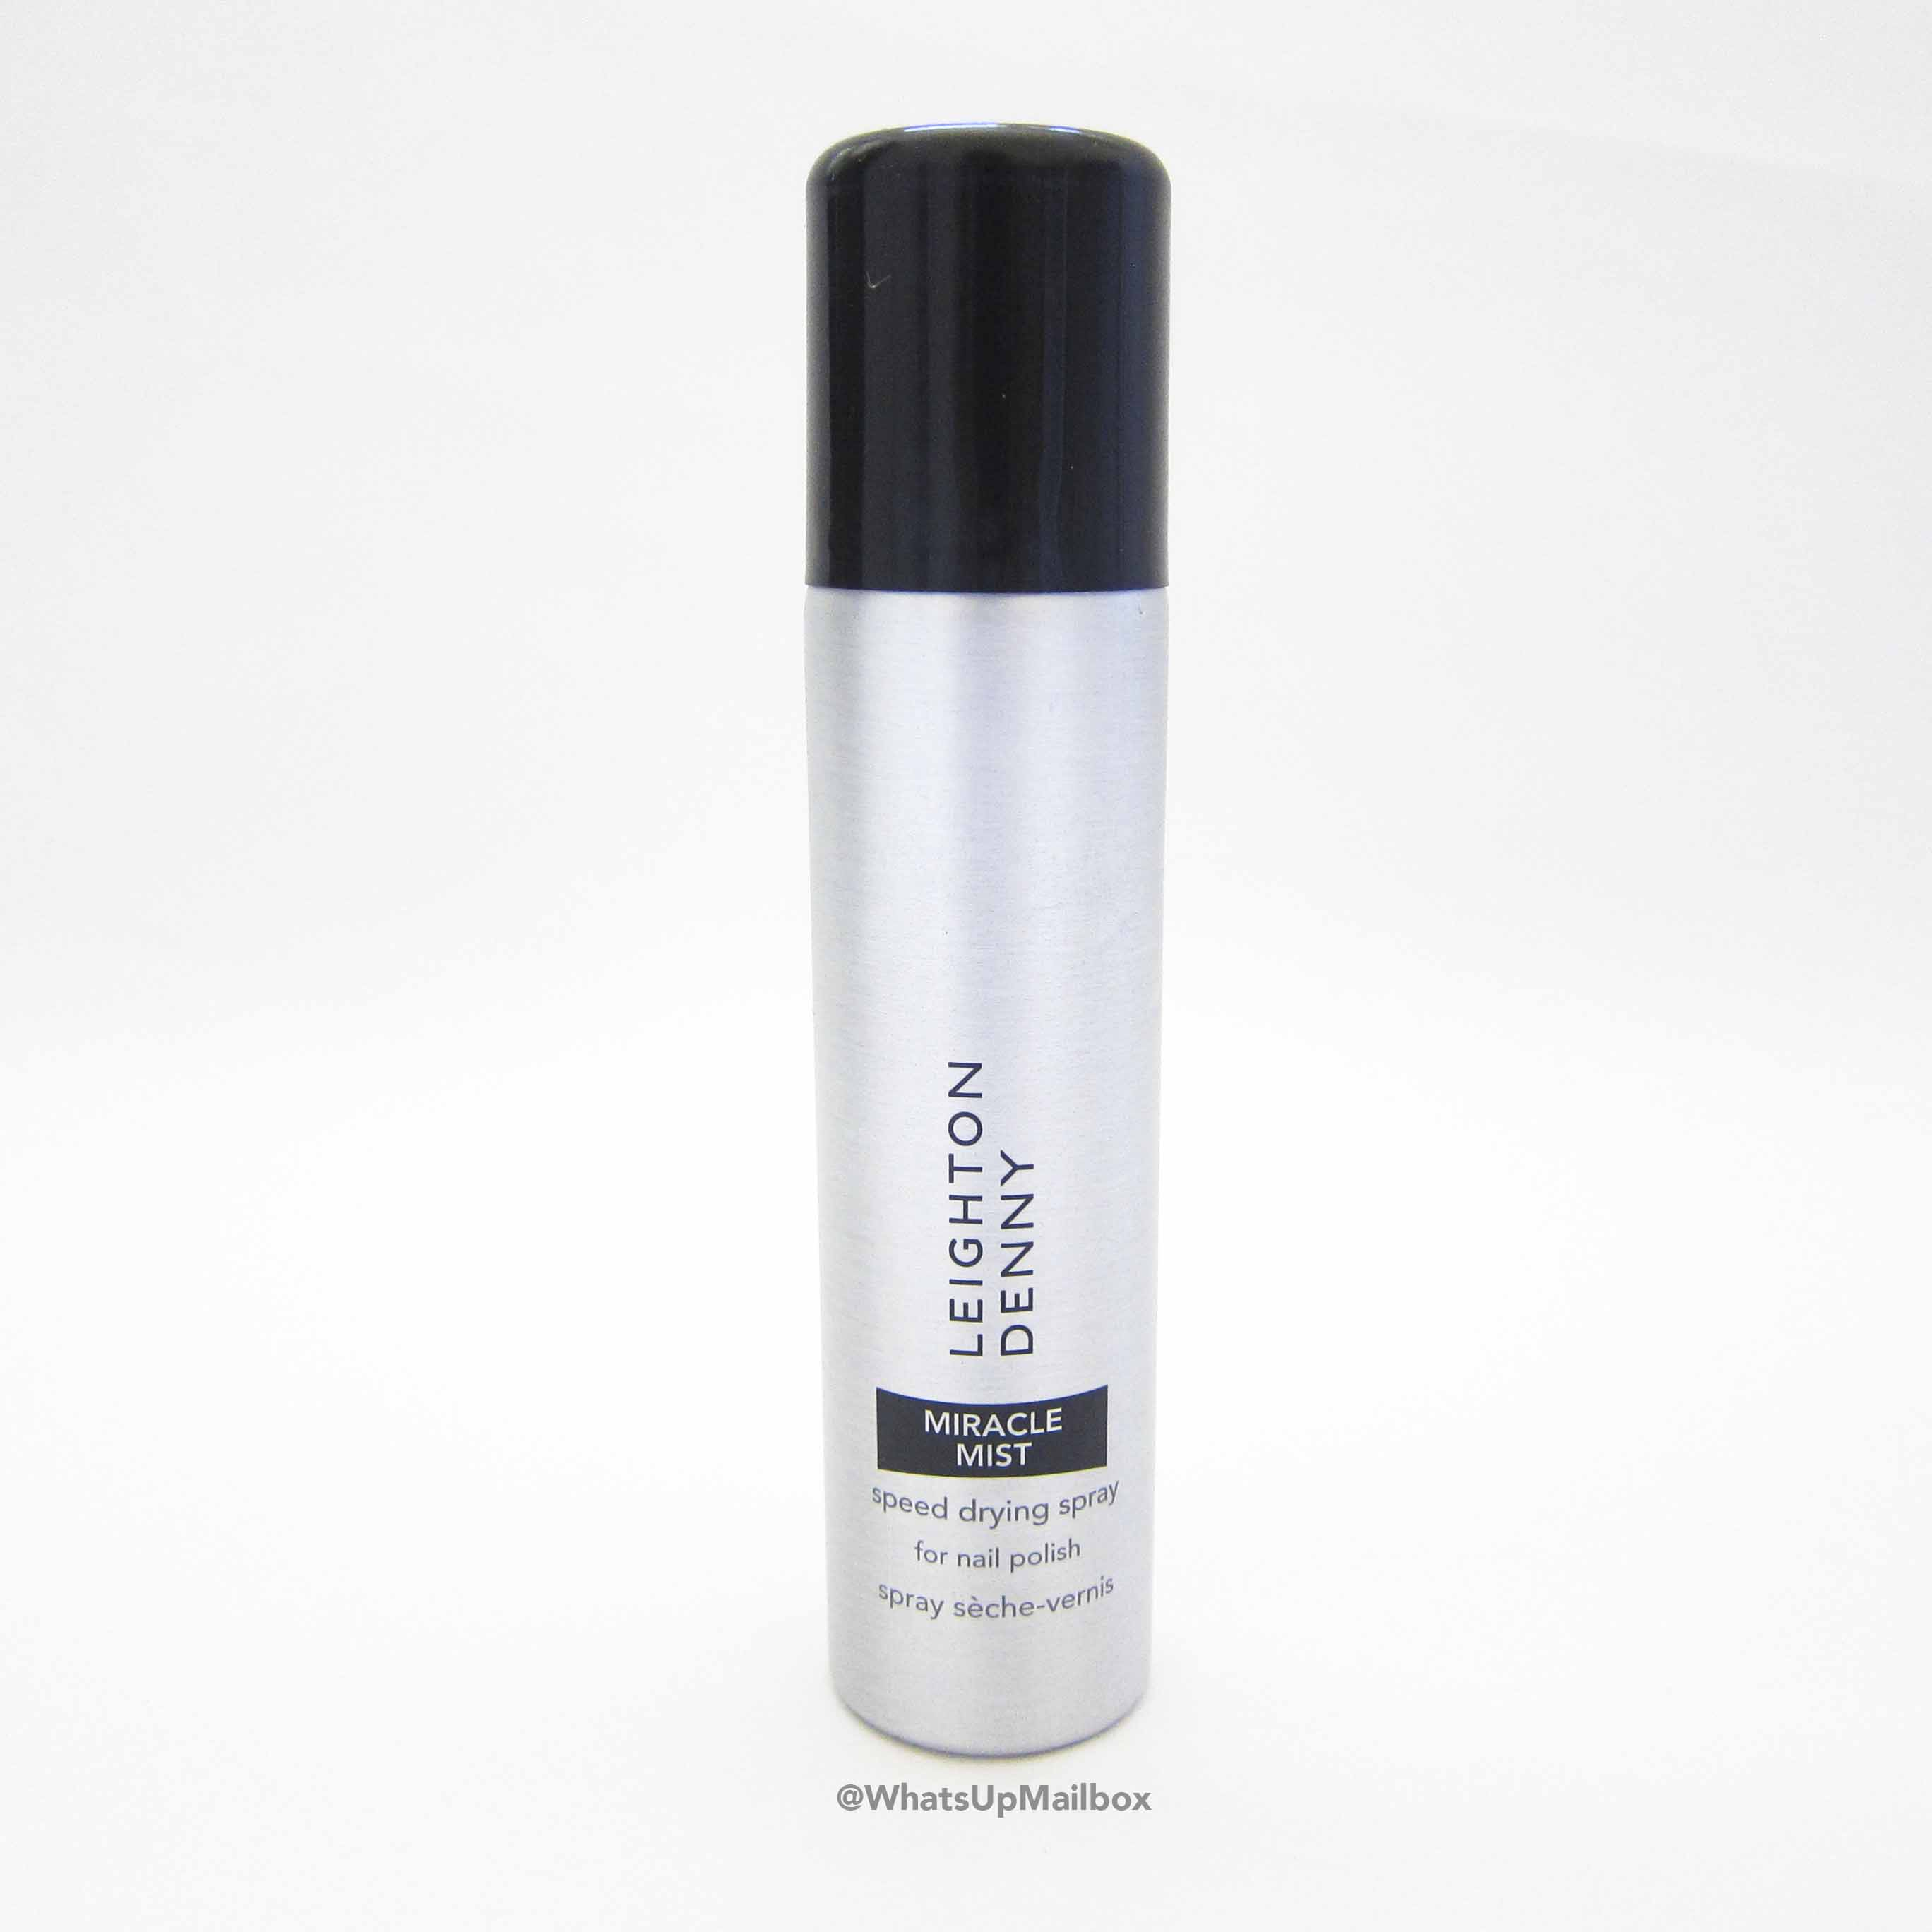 Leighton Denny Miracle Mist Speed Drying Spray for Nail Polish